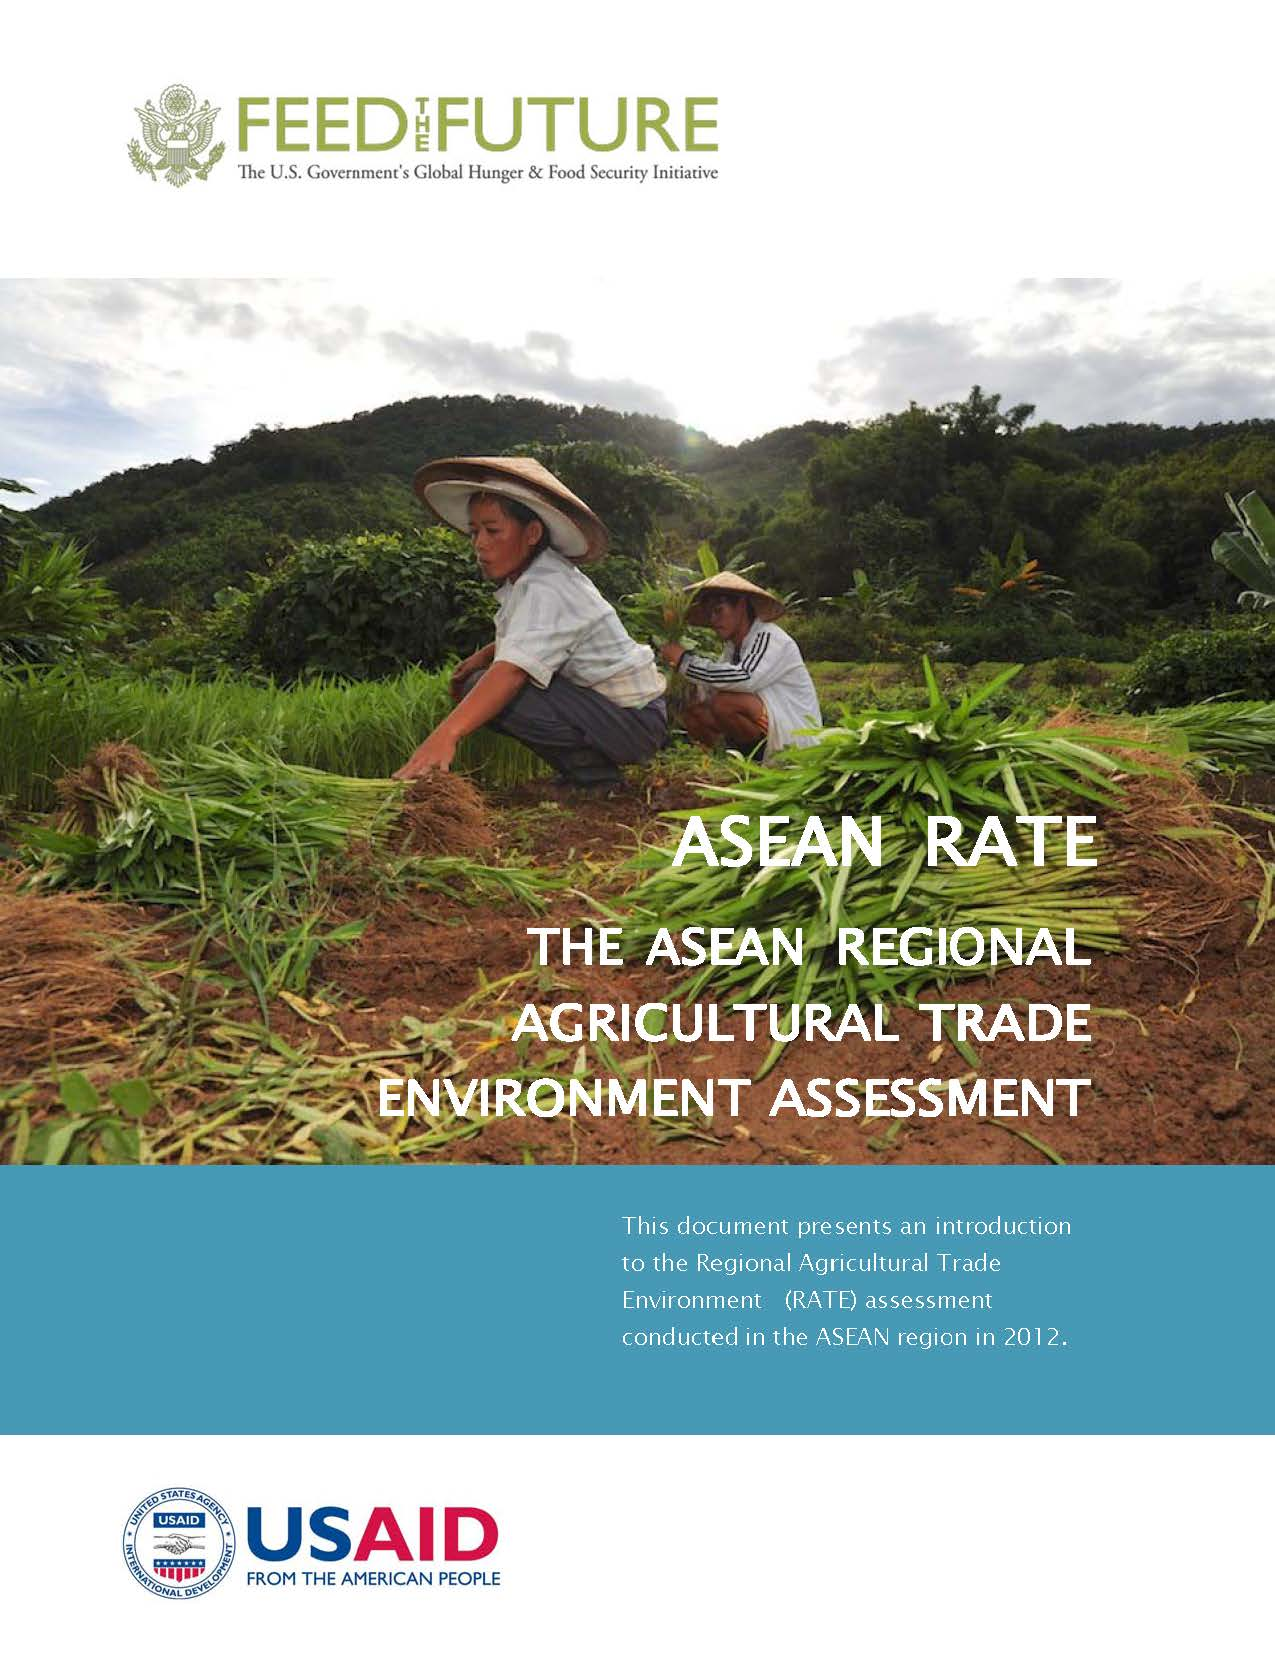 ASEAN Regional Agricultural Trade Environment Assessment: Introduction